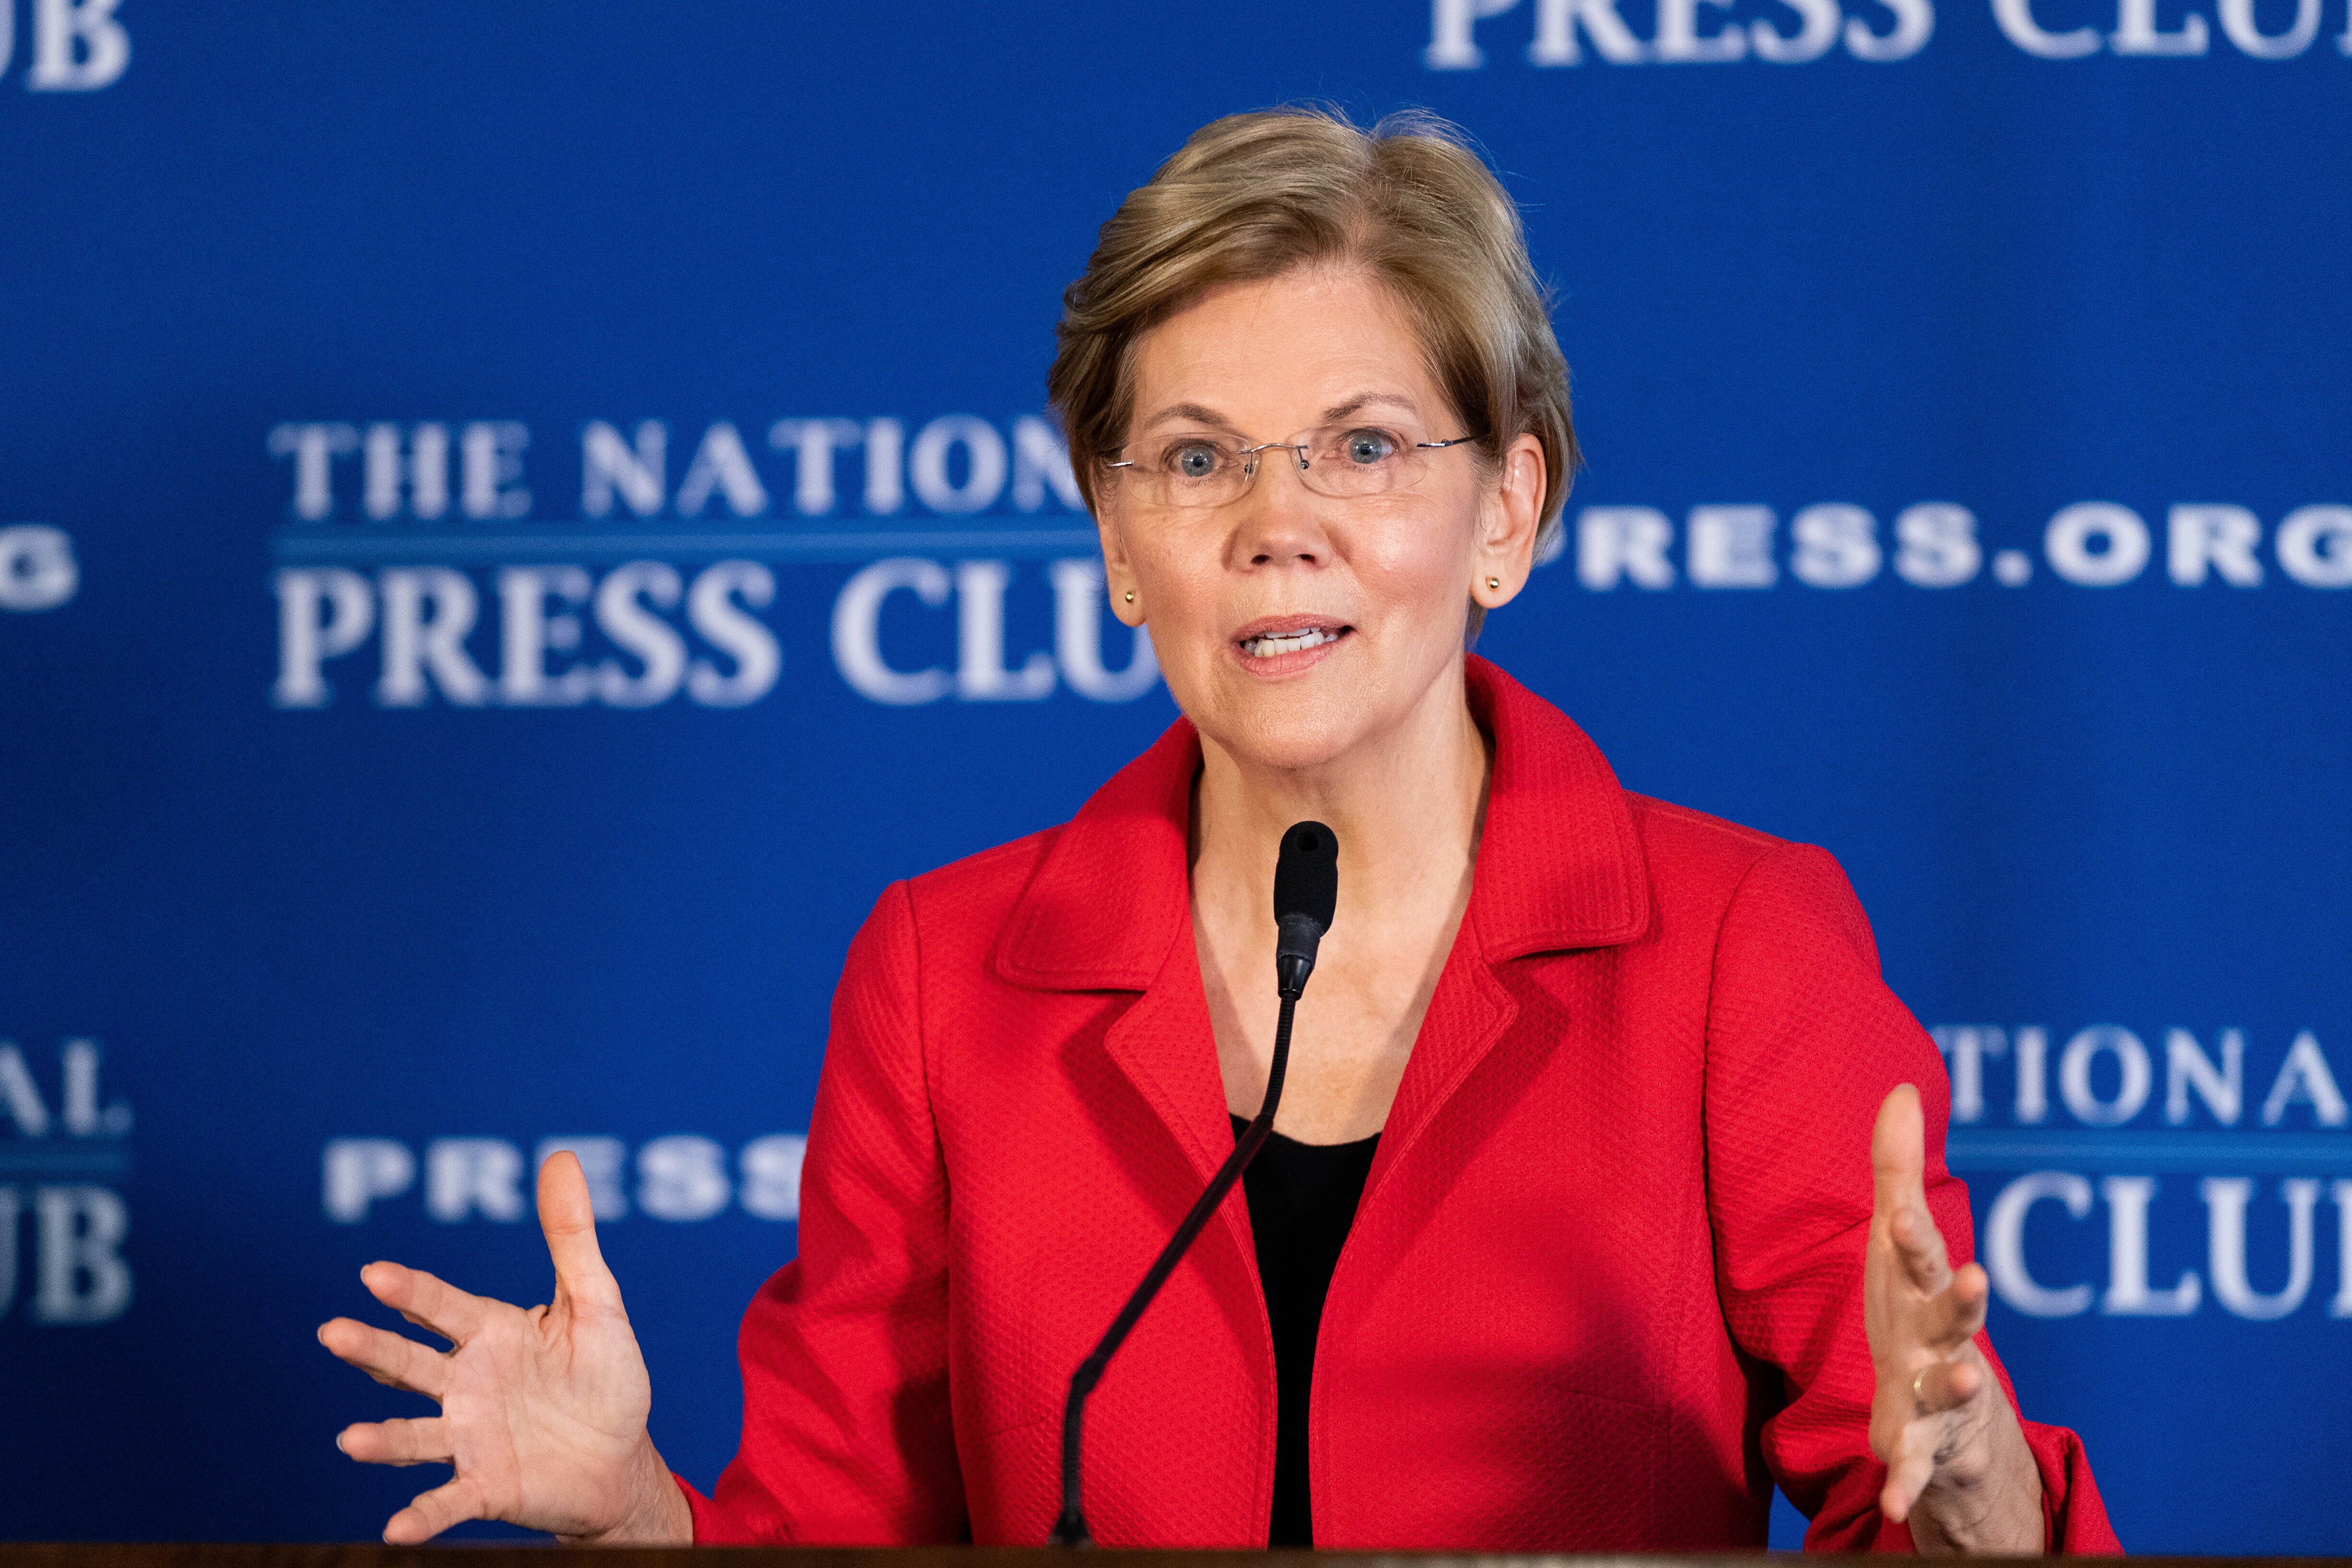 Warren unveiled an ambitious anti-corruption package even before she entered the presidential contest.